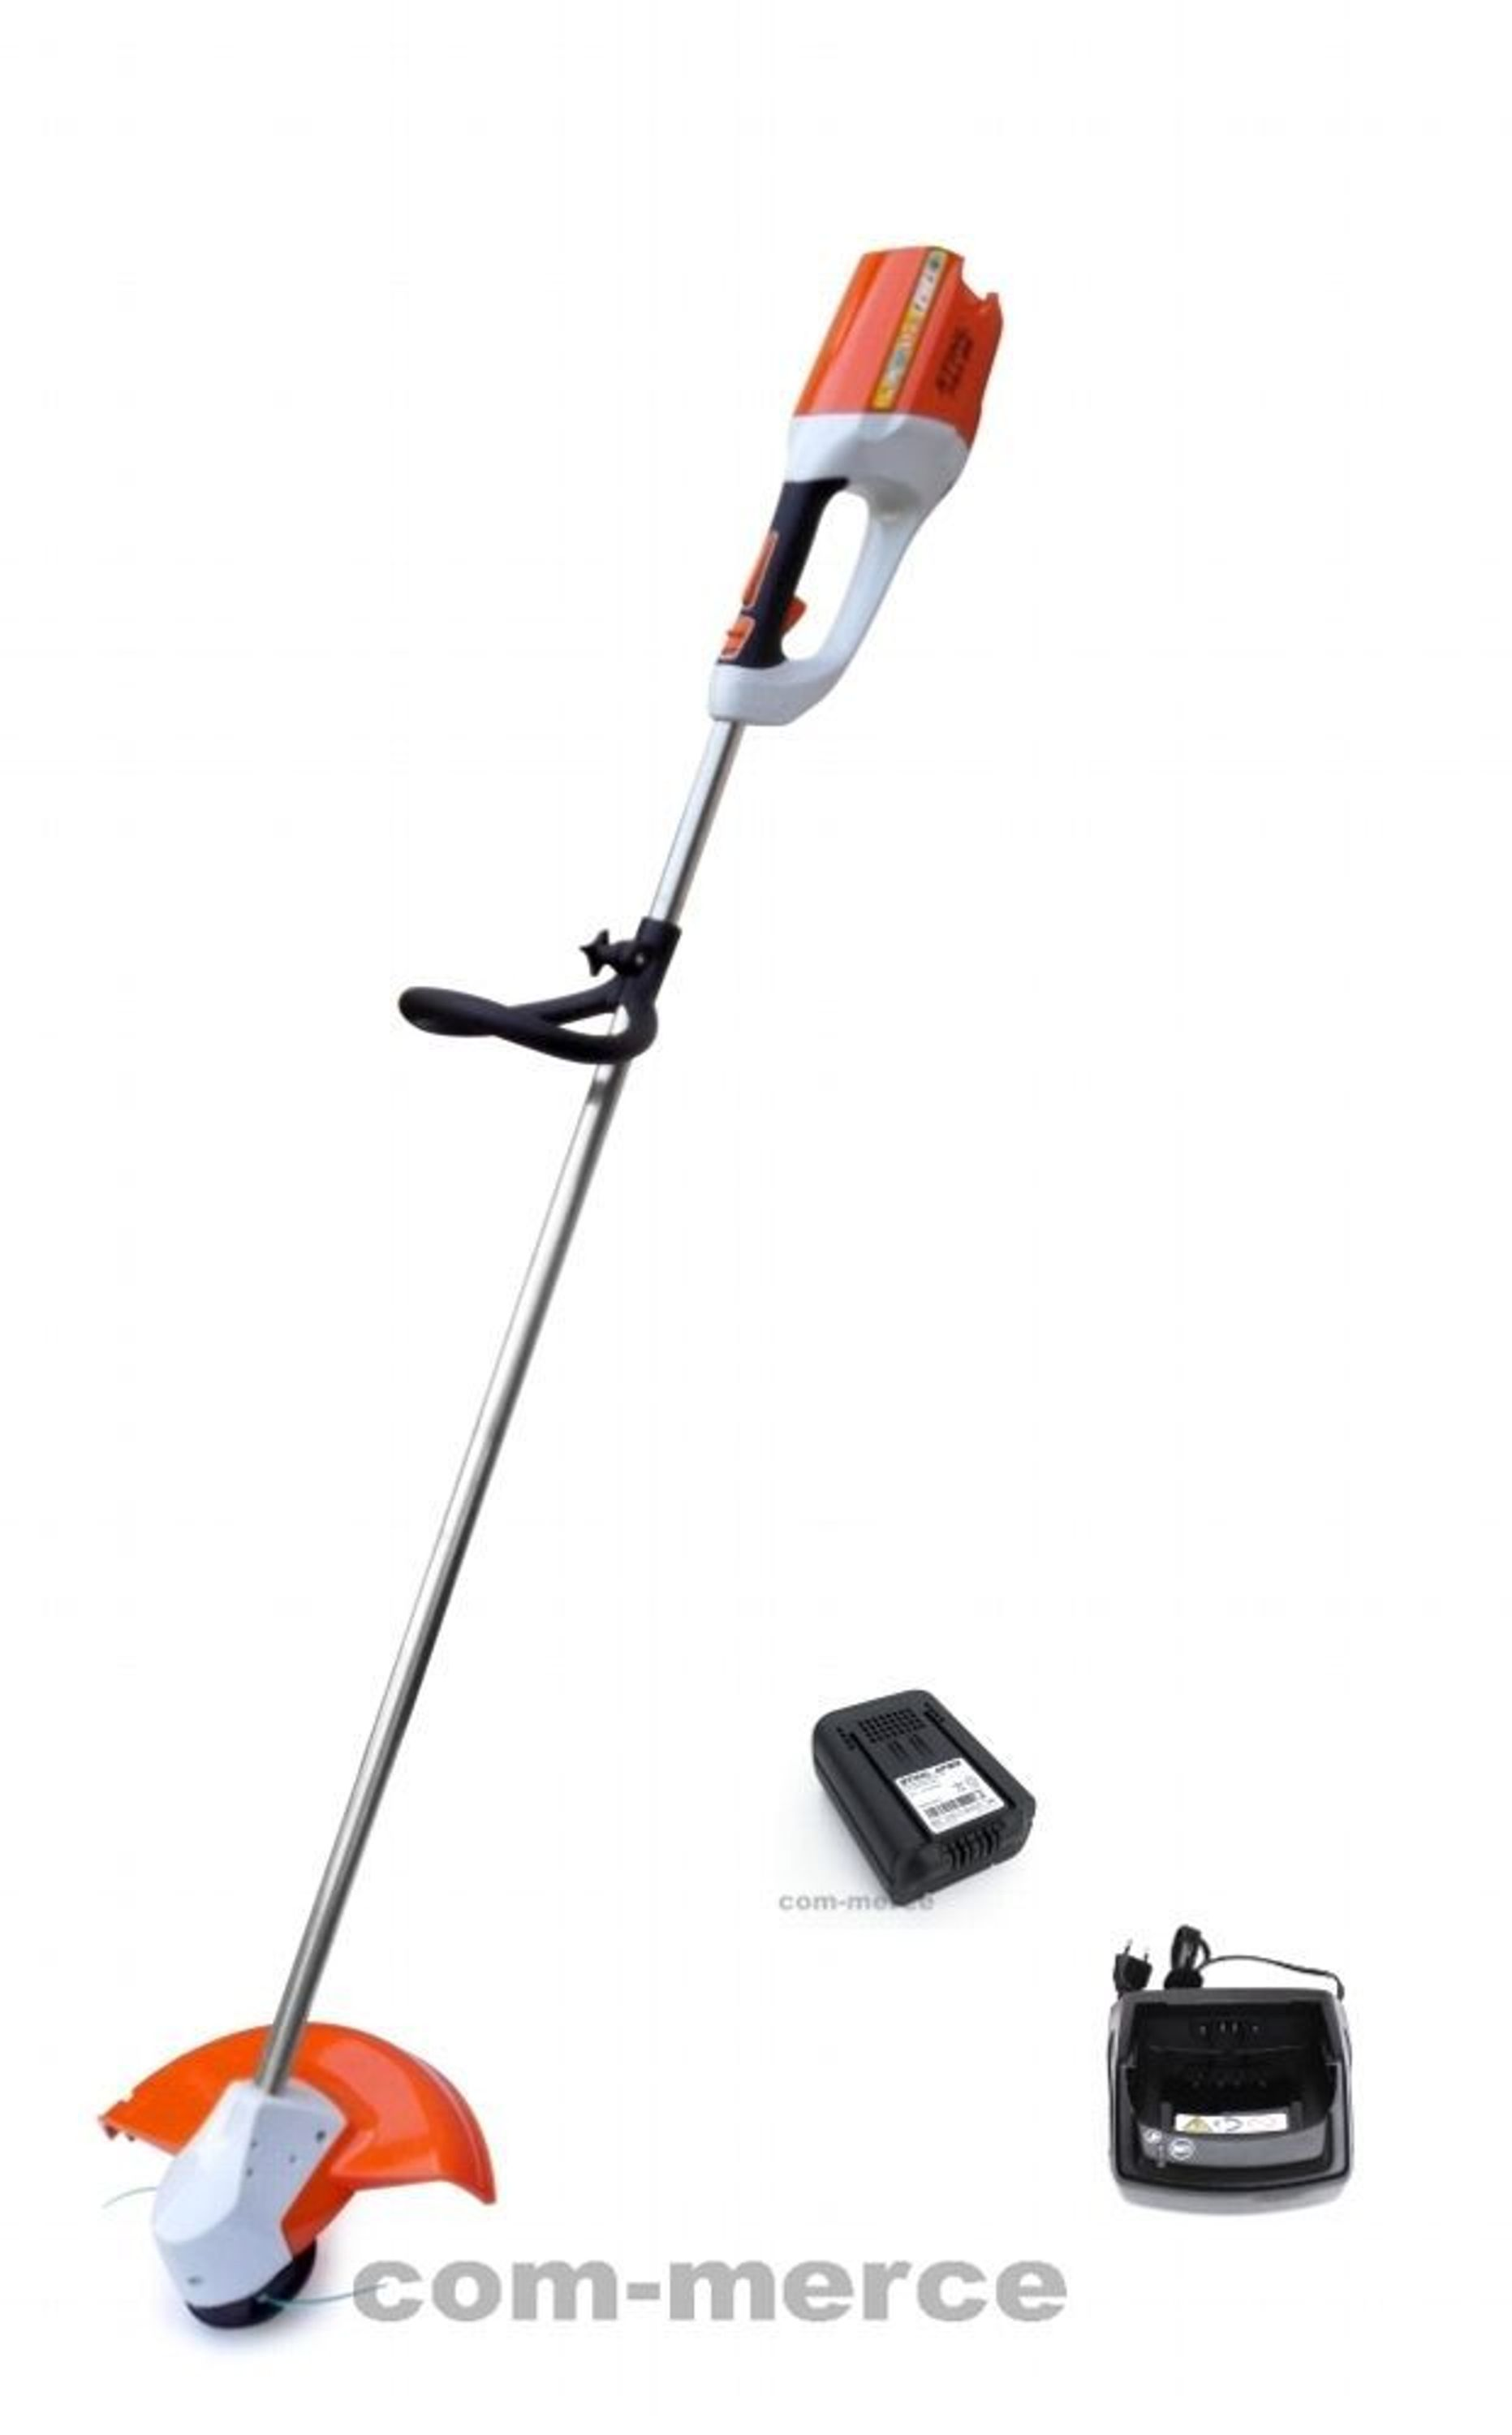 stihl fsa 65 akku motorsense trimmer im set oder solo kaufen bei. Black Bedroom Furniture Sets. Home Design Ideas